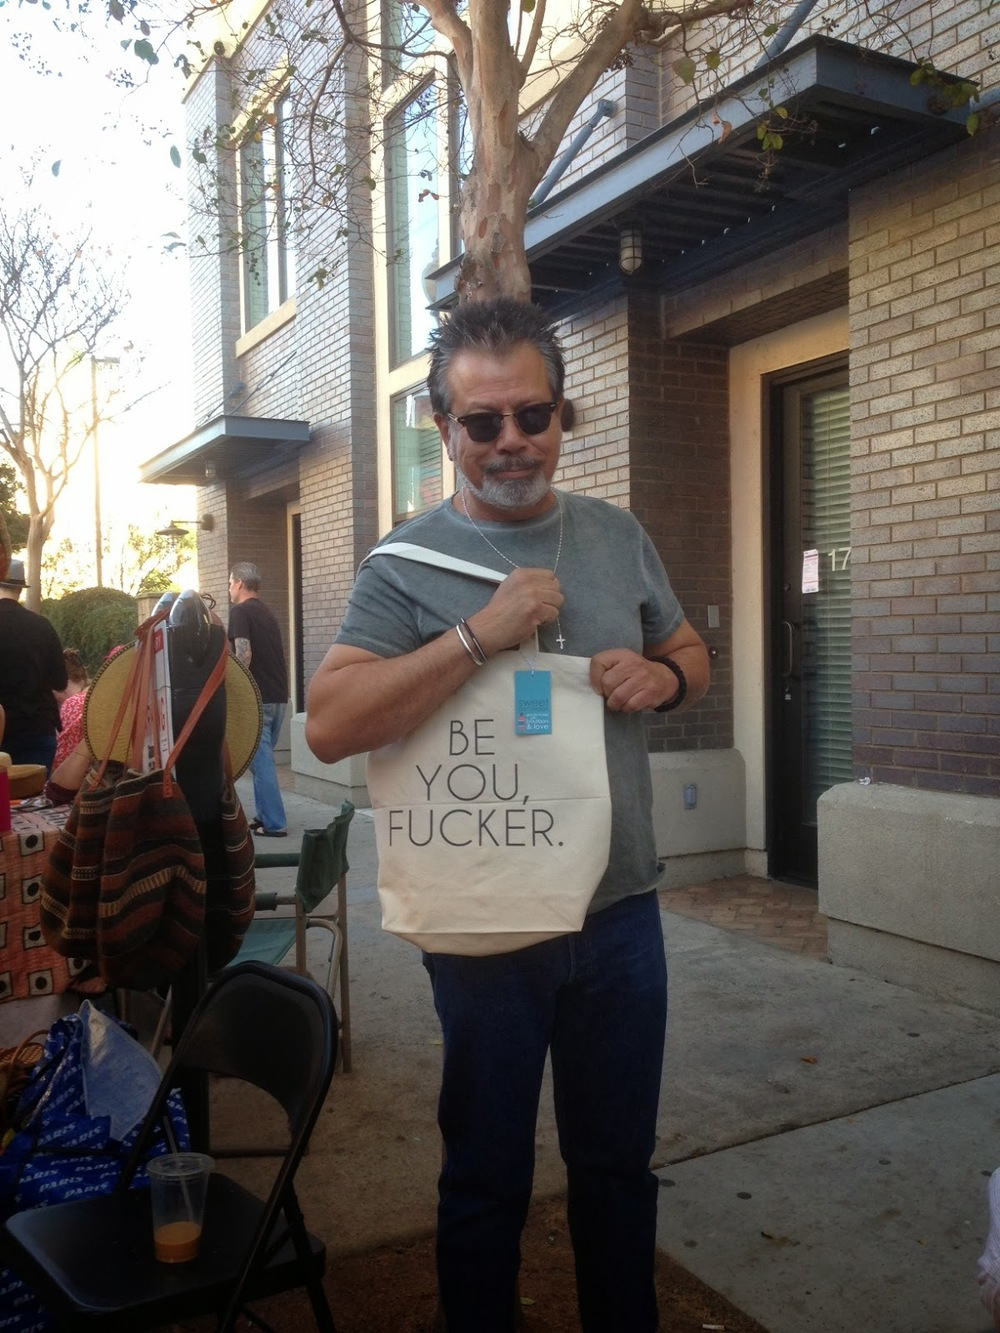 My pops and his new Sweet Perversion tote bag.